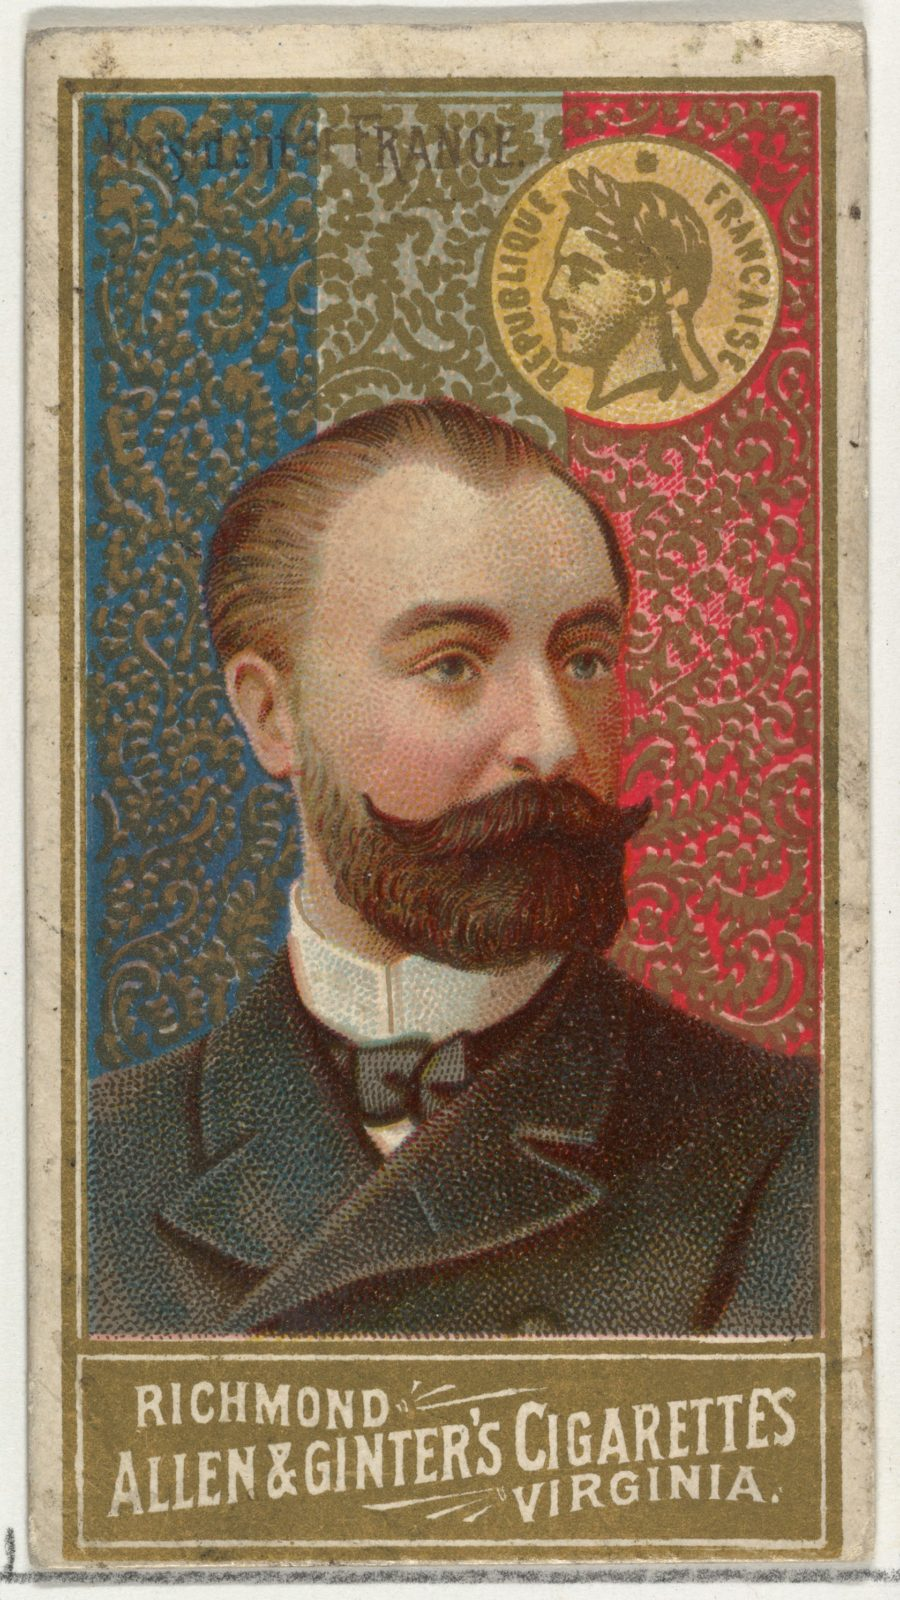 President of France, from World's Sovereigns series (N34) for Allen & Ginter Cigarettes